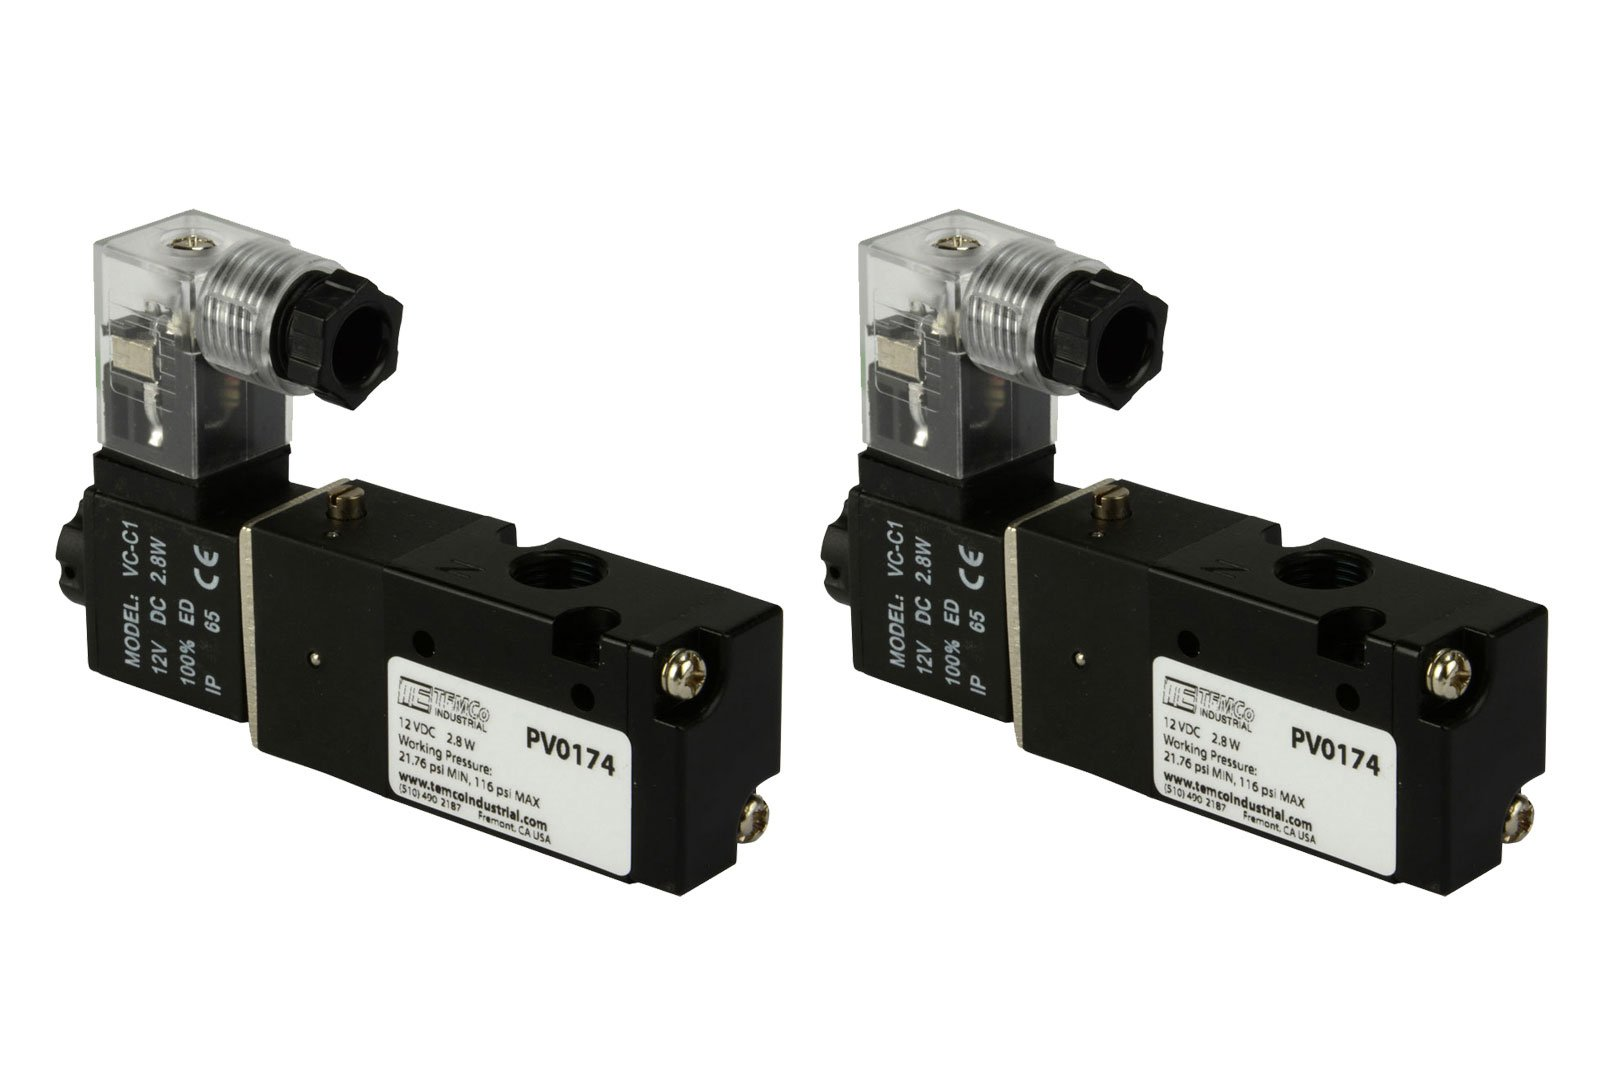 2 Qty 12V DC Solenoid Air Pneumatic Control Pilot Valve 3 Port 3 Way 2 Position 1/8'' NPT by Temco